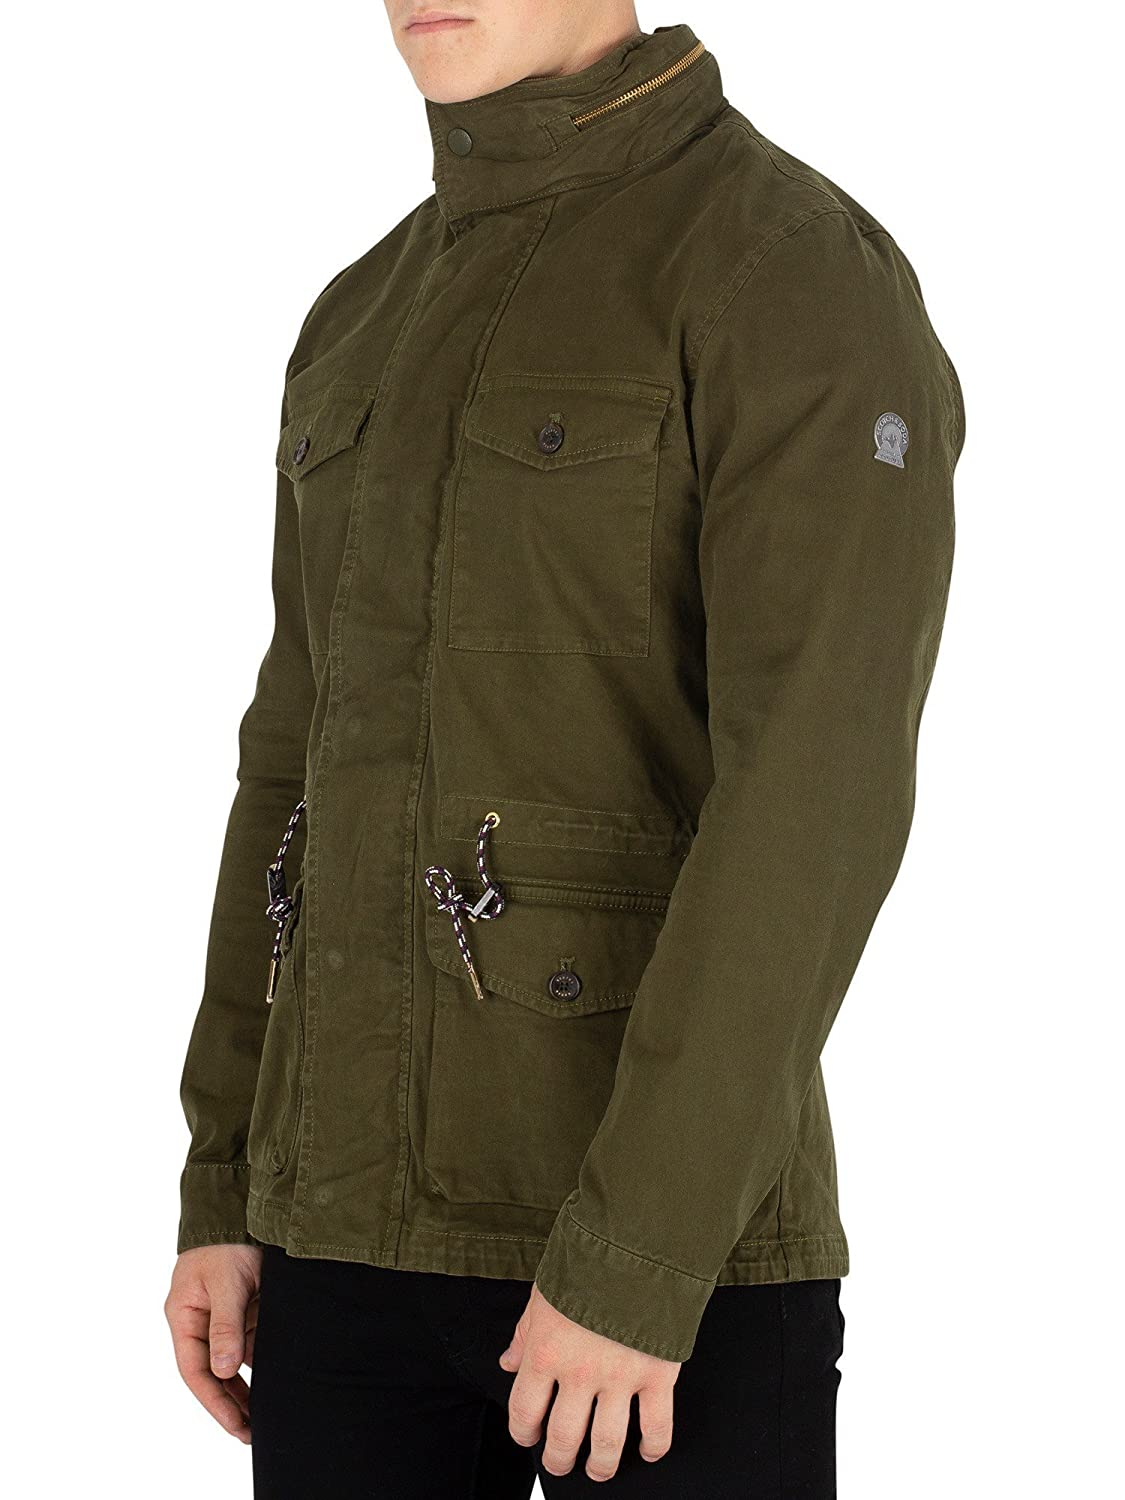 Scotch & Soda Men's Field Jacket, Green